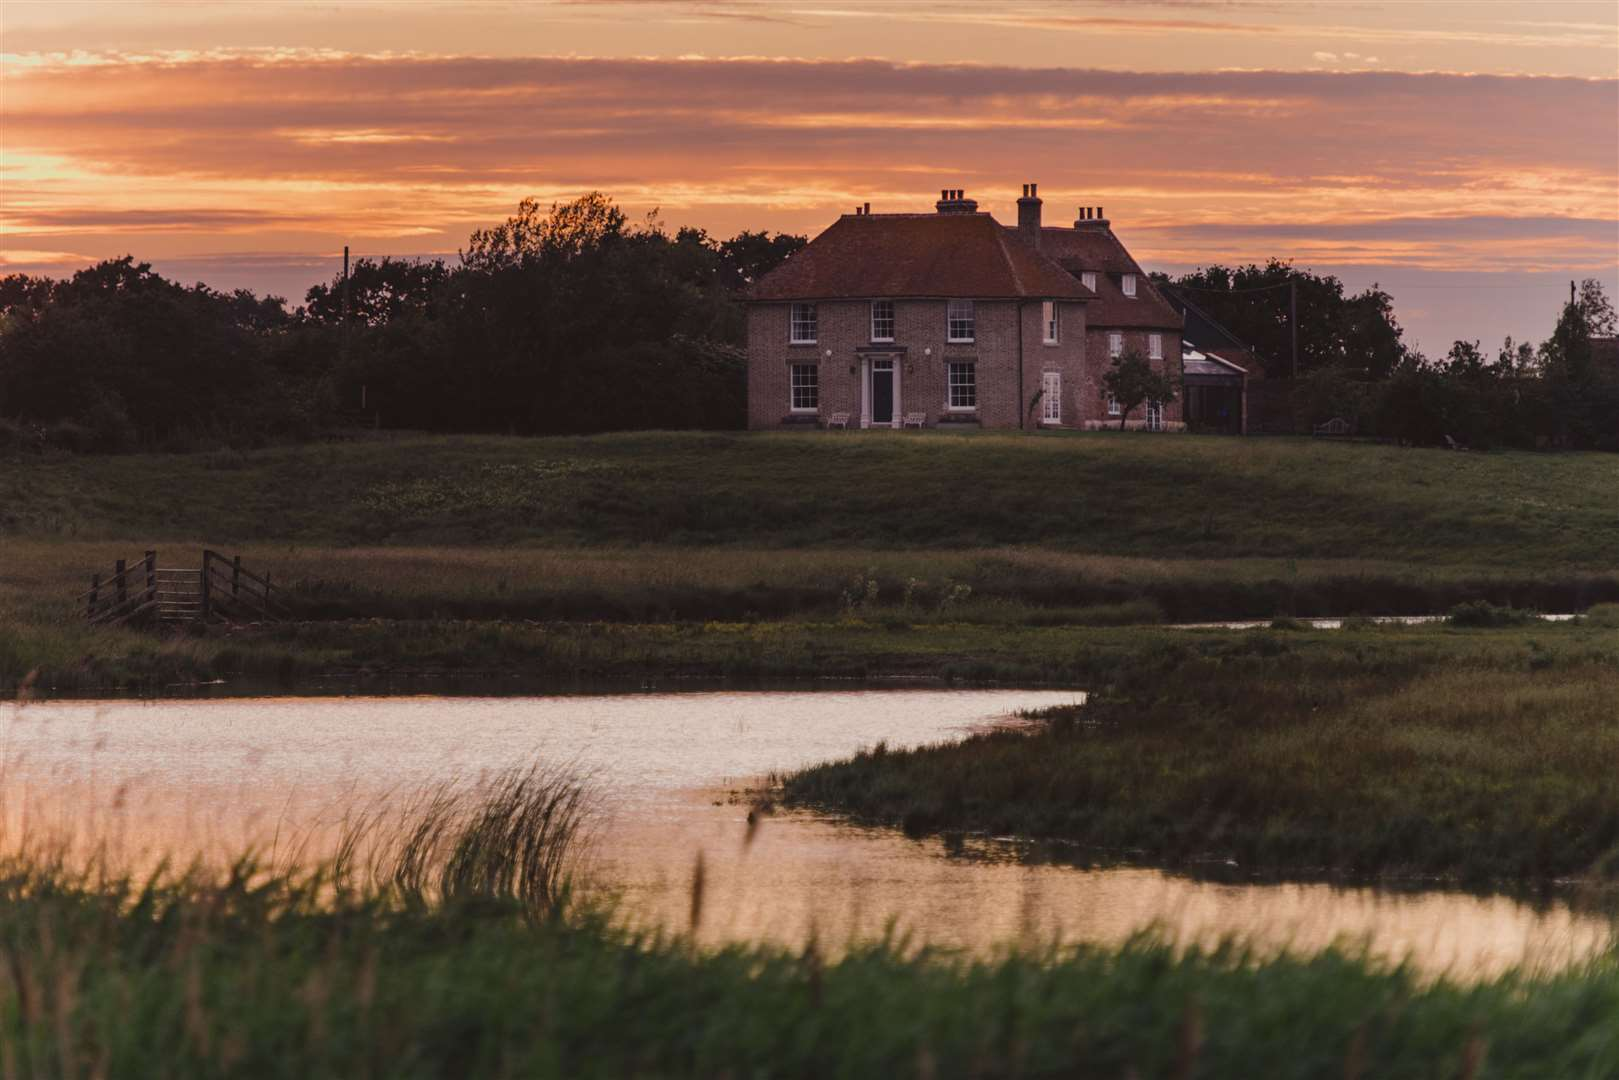 Kingshill Farmhouse has views across the Elmley National Nature Reserve on Sheppey